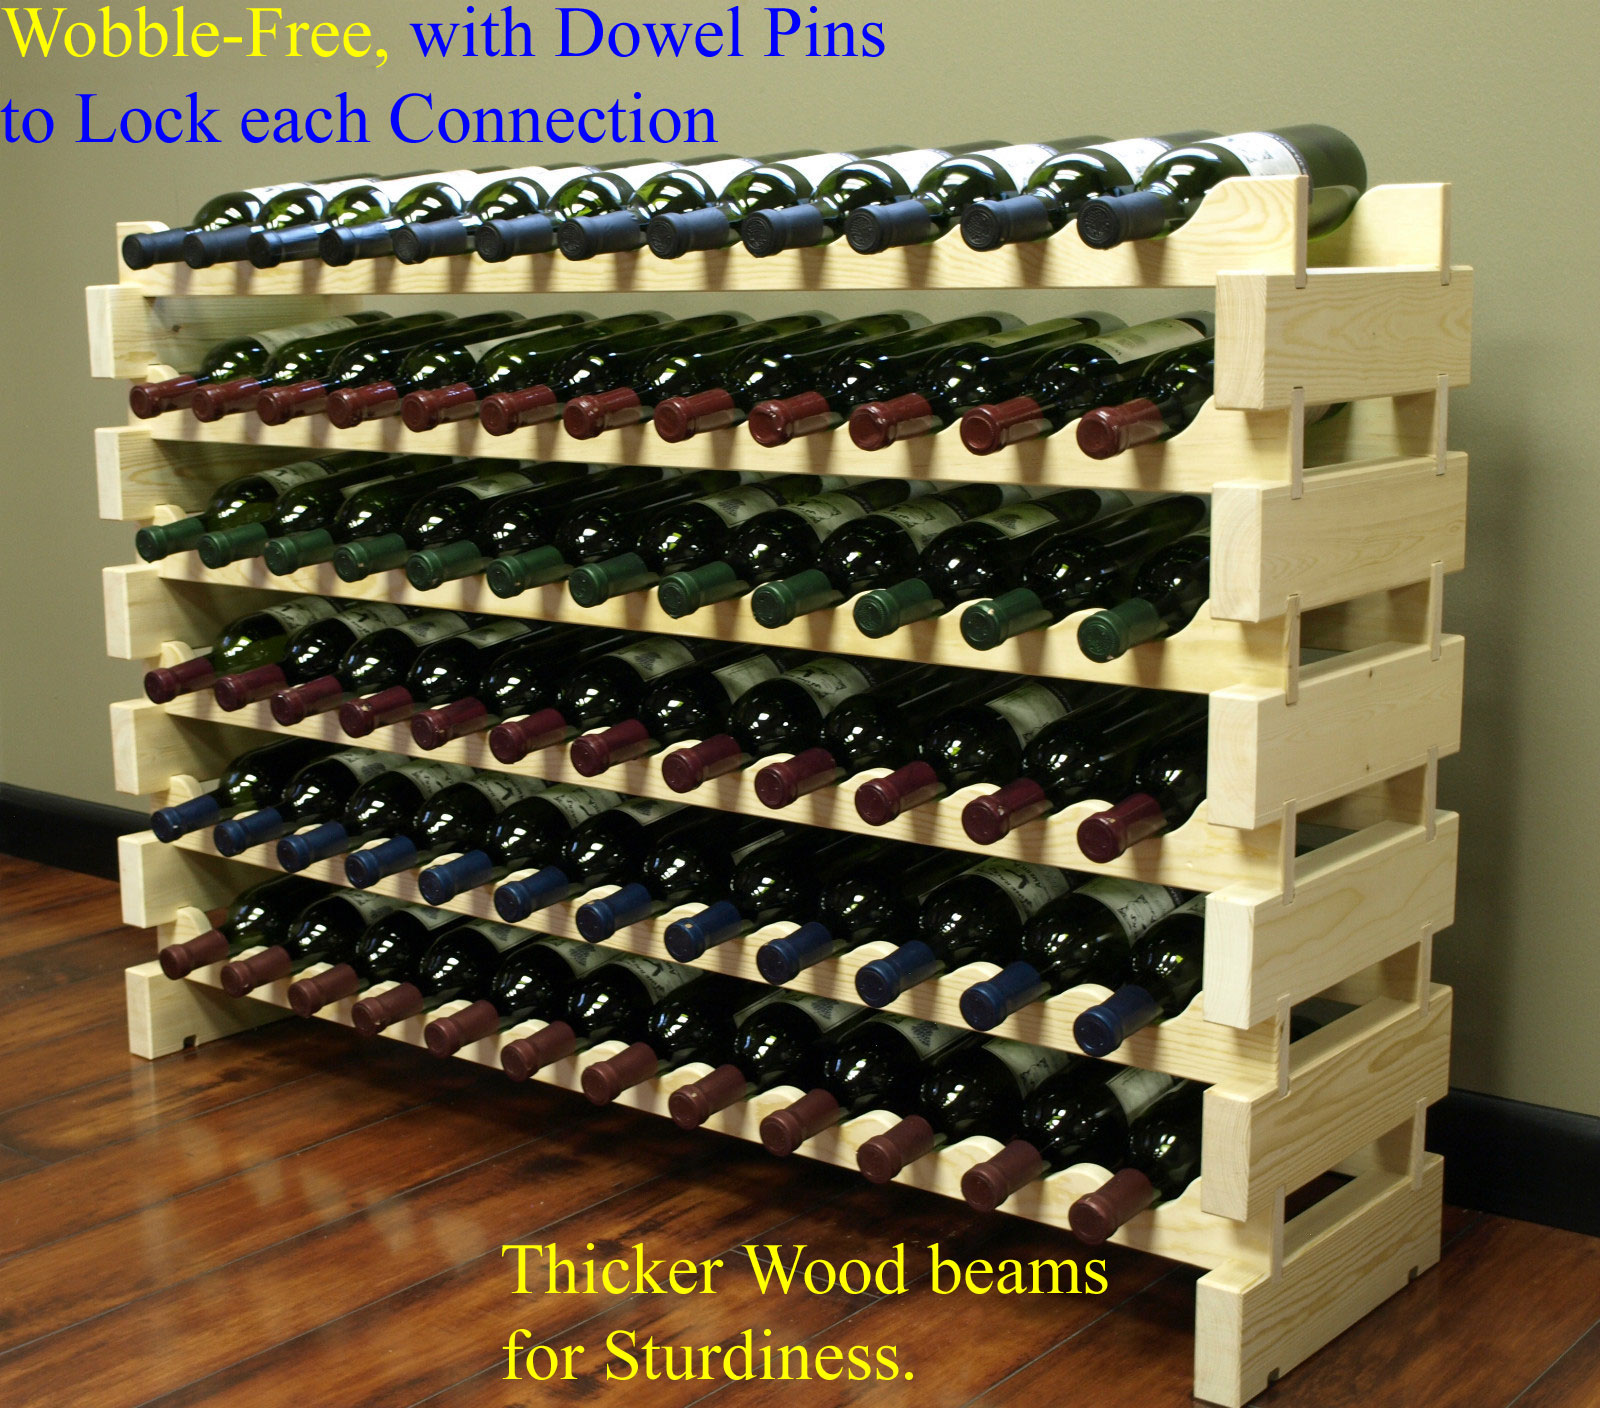 Stackable Modular Wine Rack Stackable Storage Stand Display Shelves, Wobble-Free, Pine... by